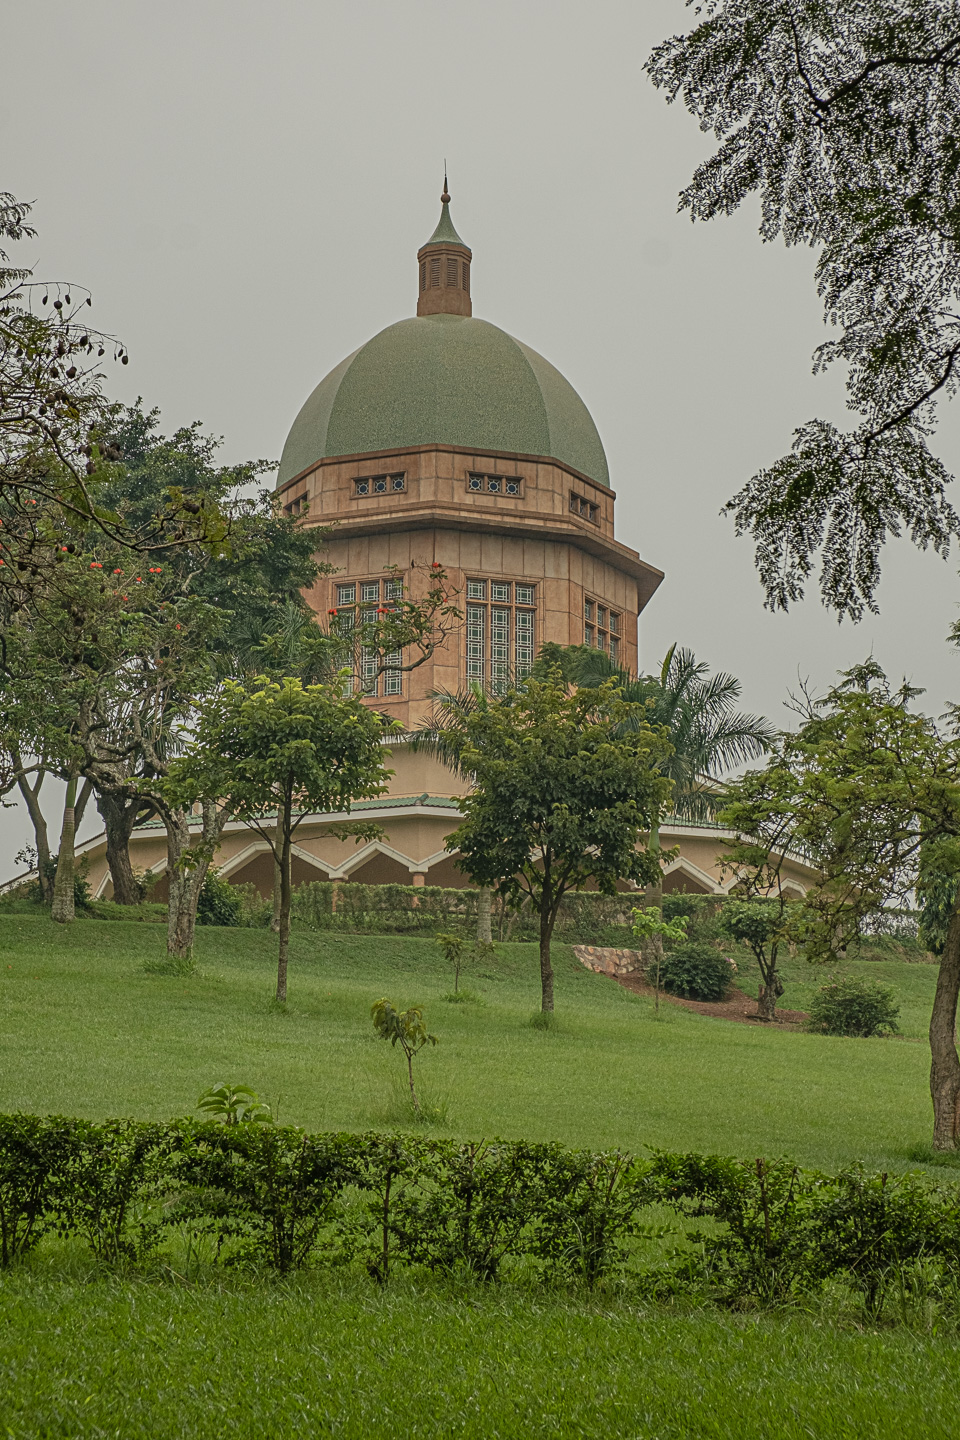 The Bahai House of Worship Sits High Atop A Hill in Kampala